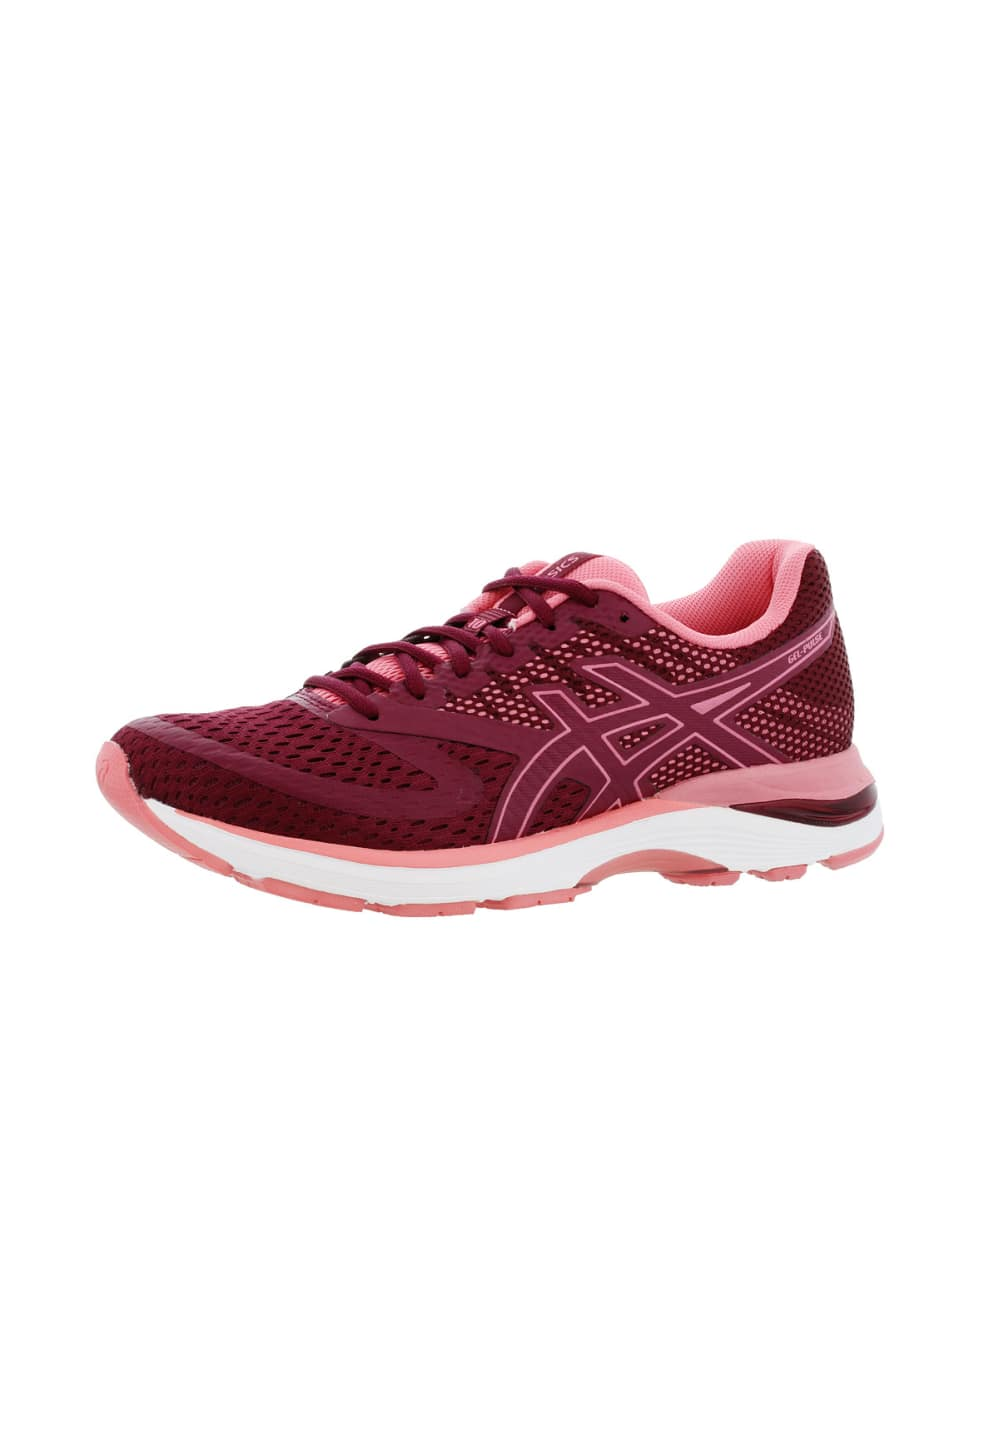 ASICS GEL-Pulse 10 - Running shoes for Women - Red  e8af7dfca29b1